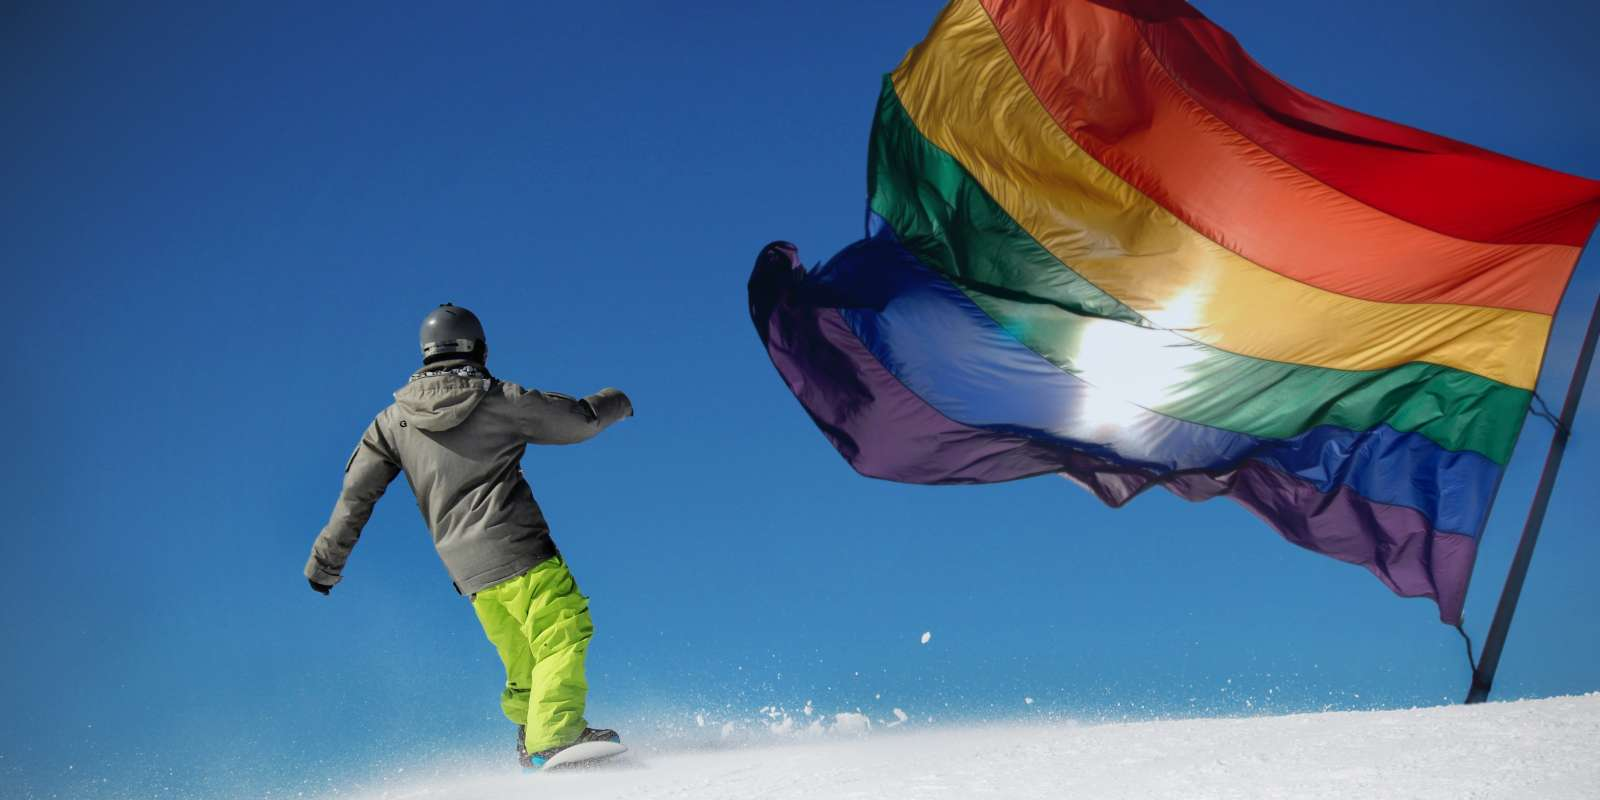 Winter Pride is coming to the slopes of Queenstown in September